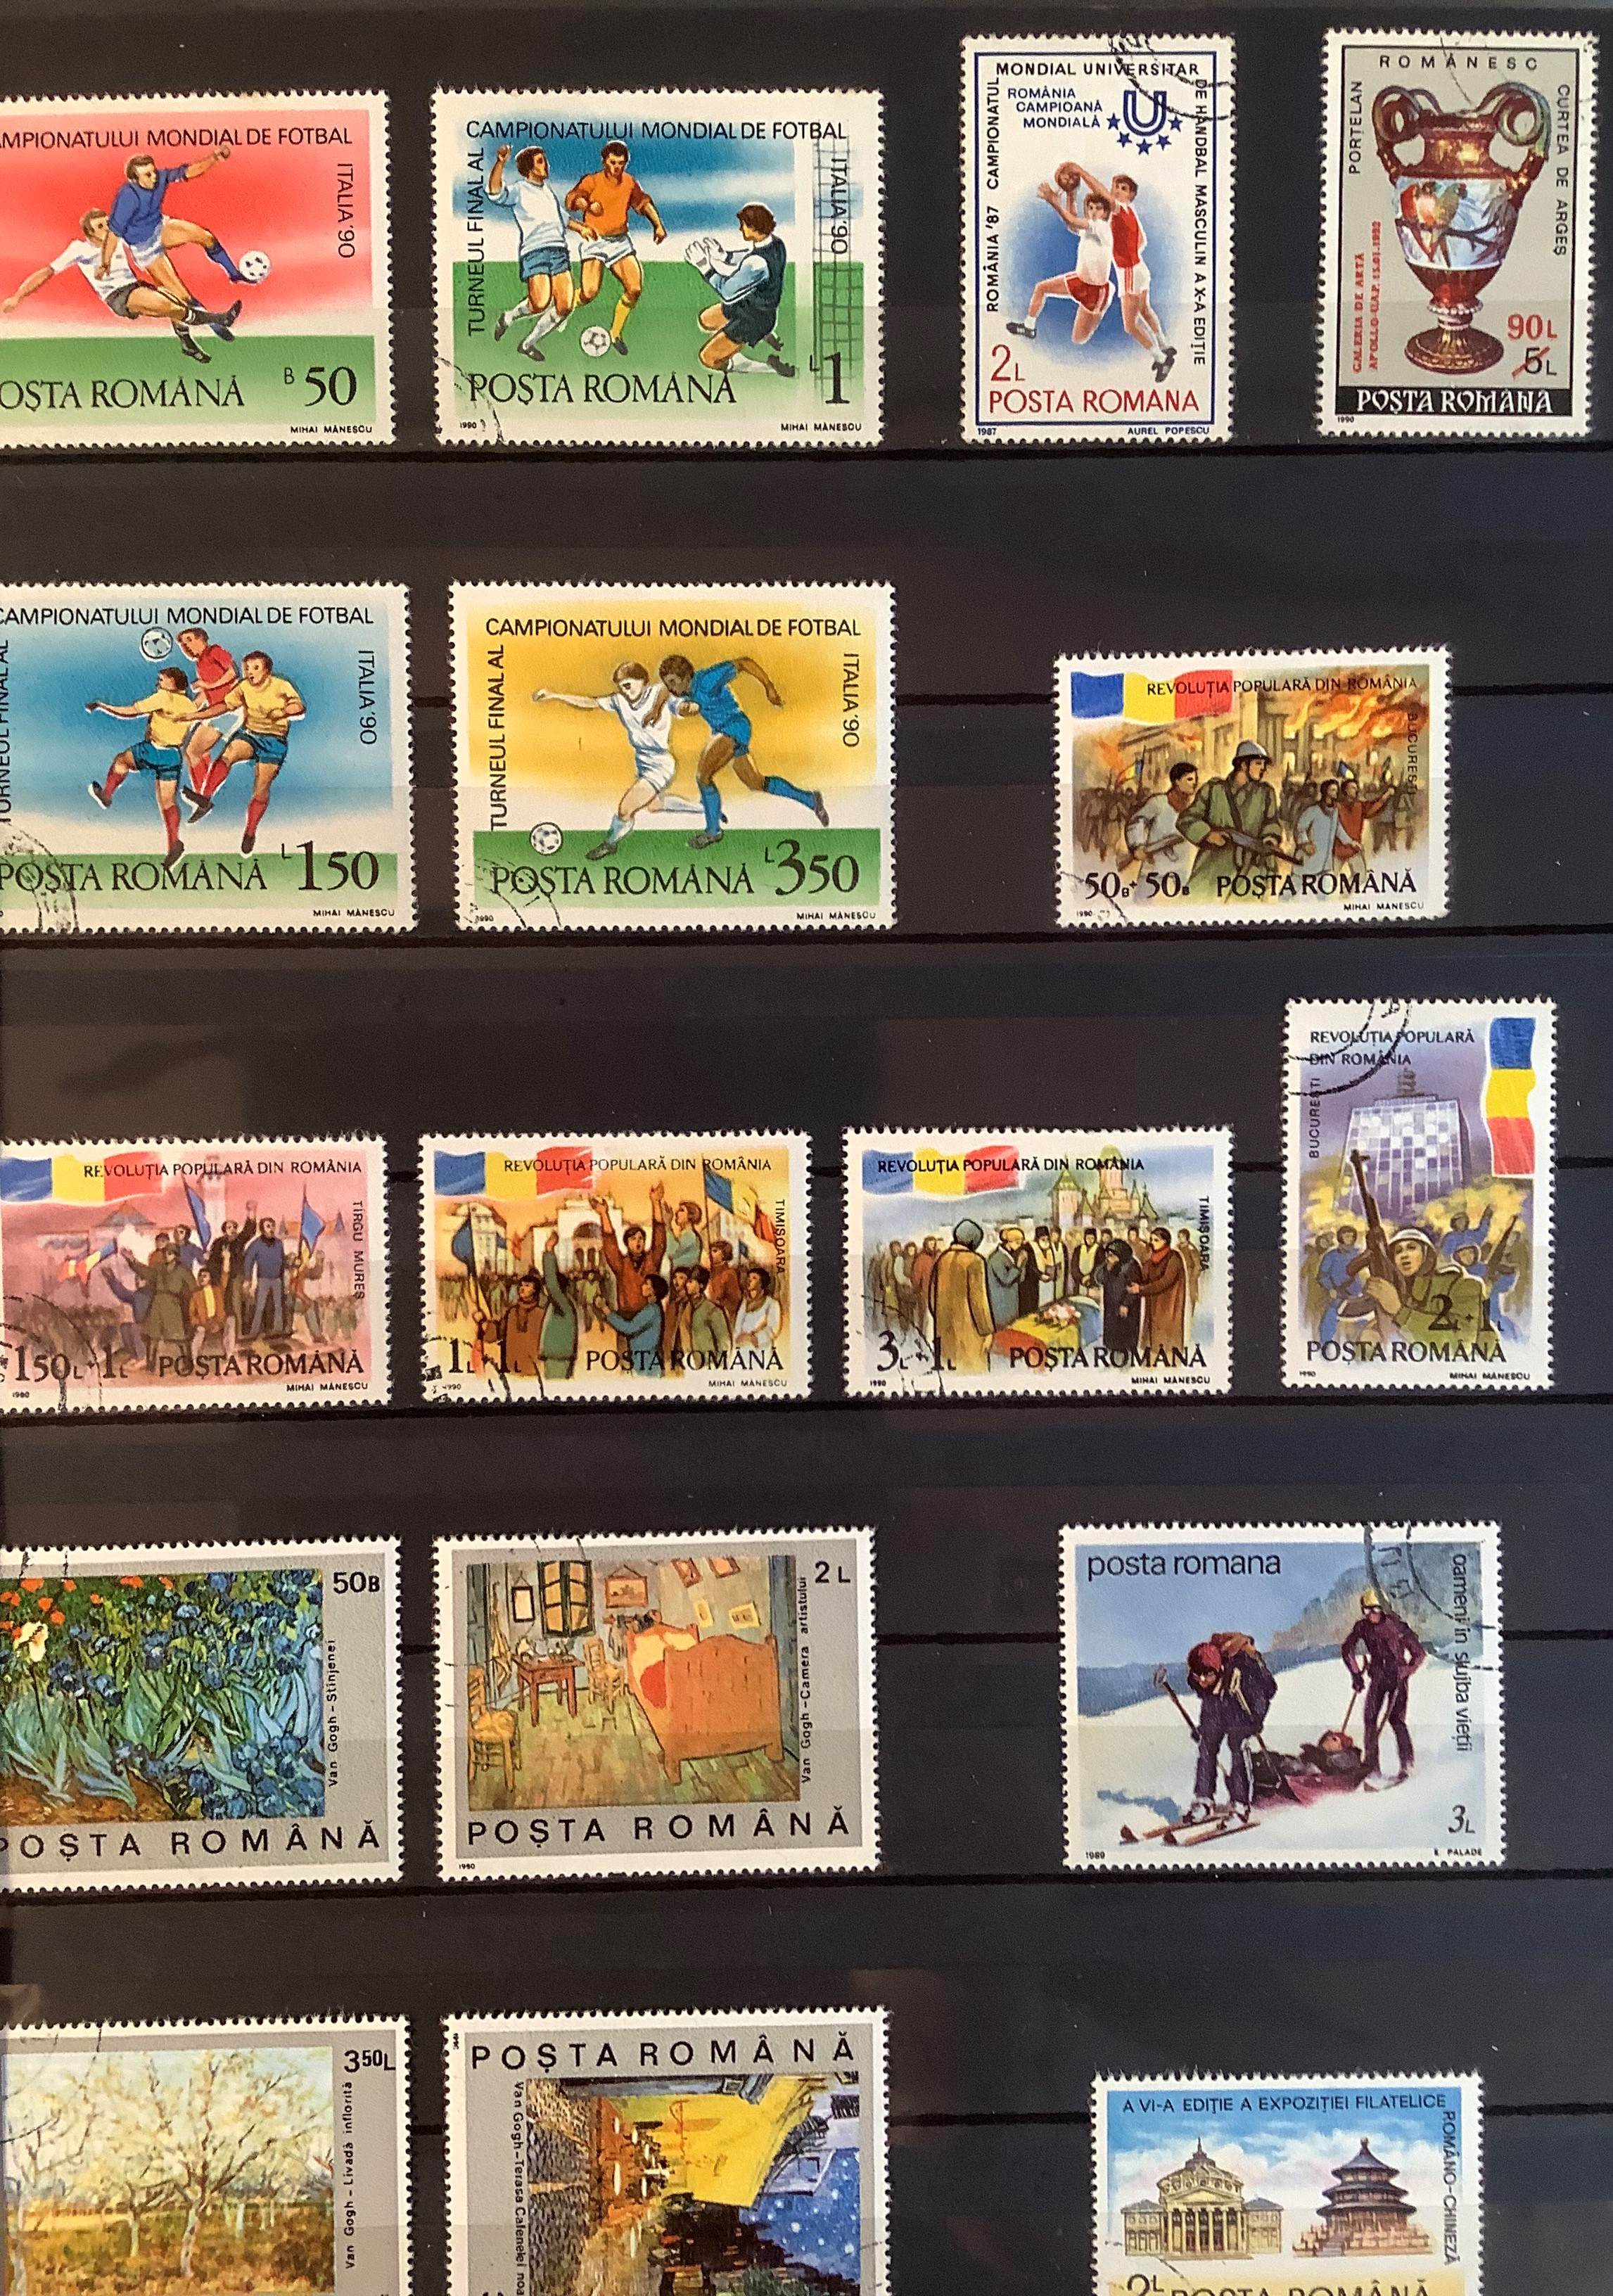 Three Stock Books with a large collection of Romanian postage stamps dating from 1925 to 1990s, a - Image 7 of 7